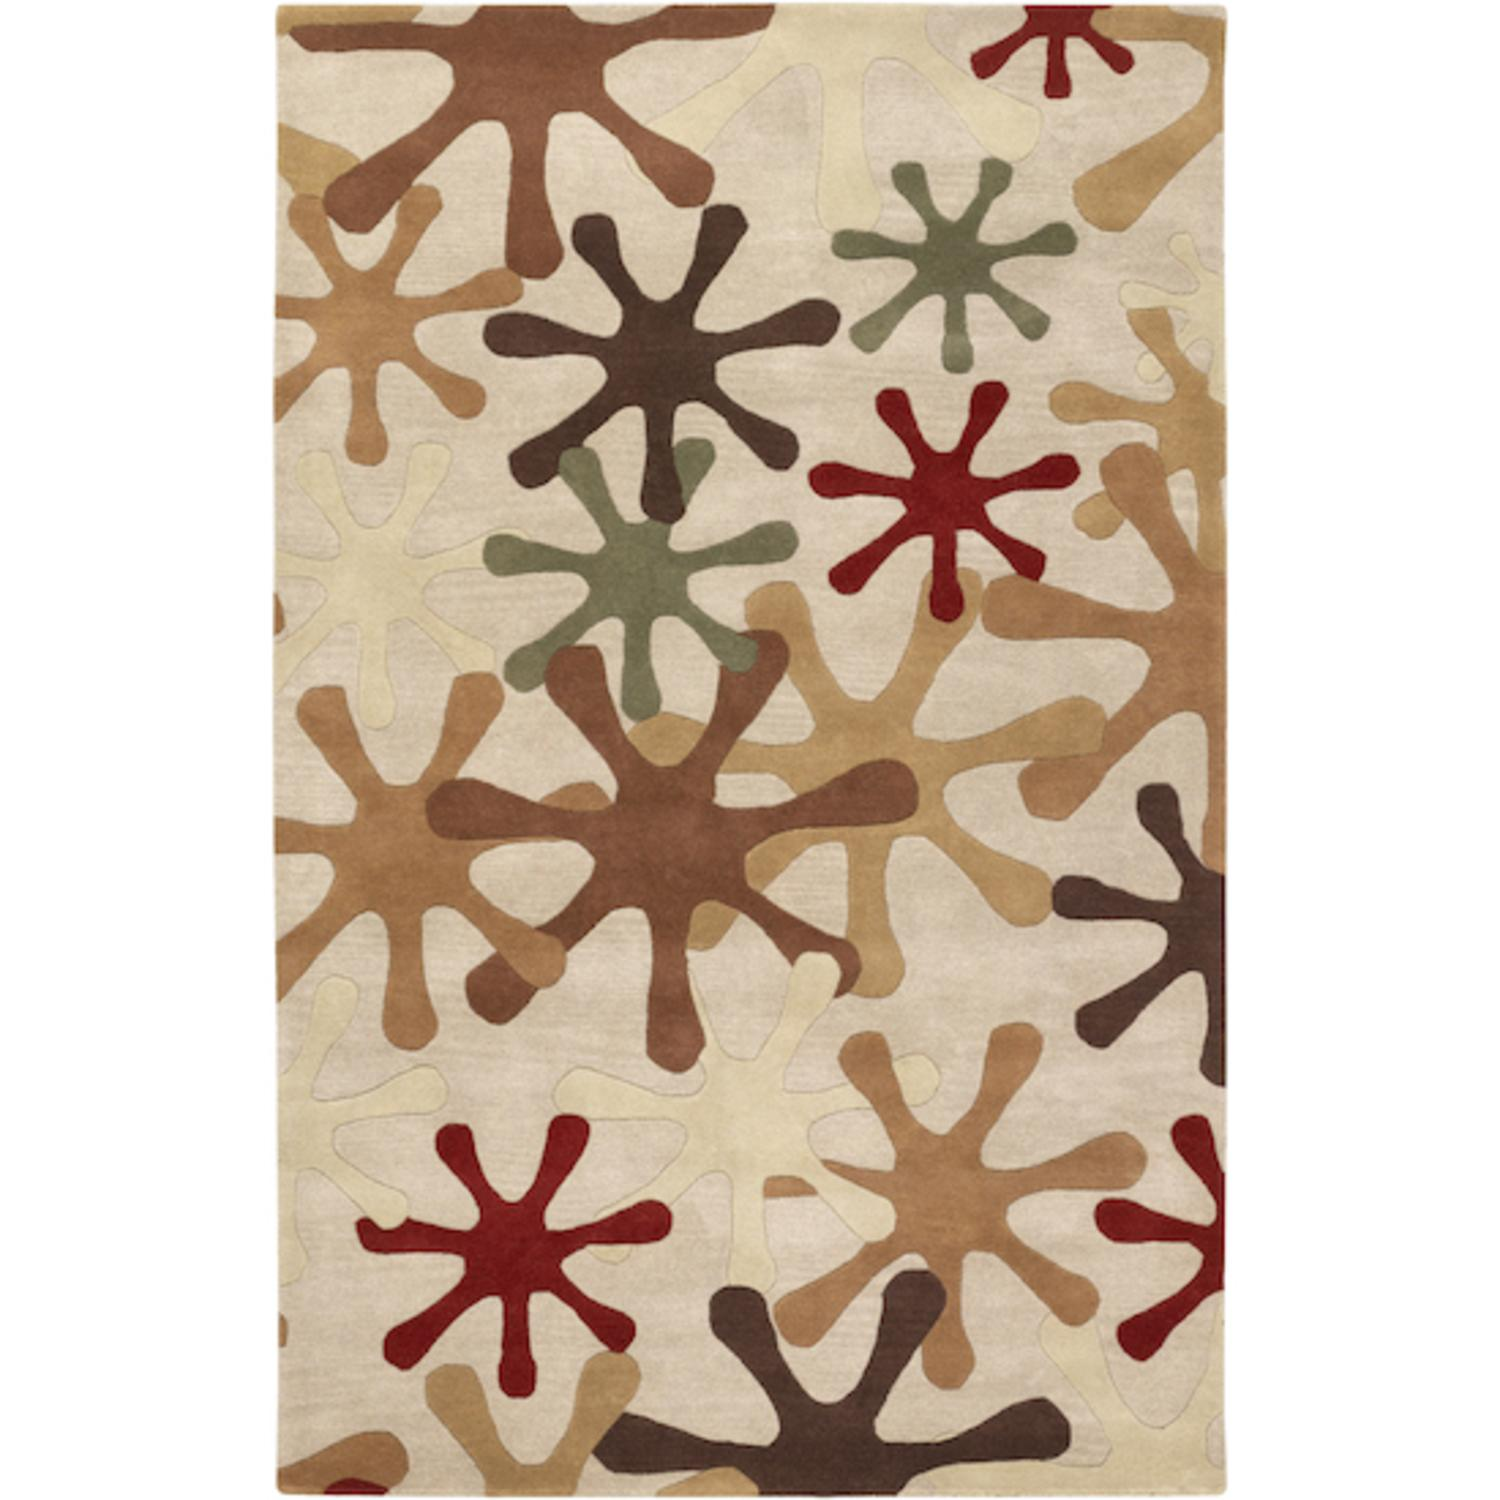 6' x 9' Urbane Jacks Carnelian Red and Army Green Wool Area Throw Rug